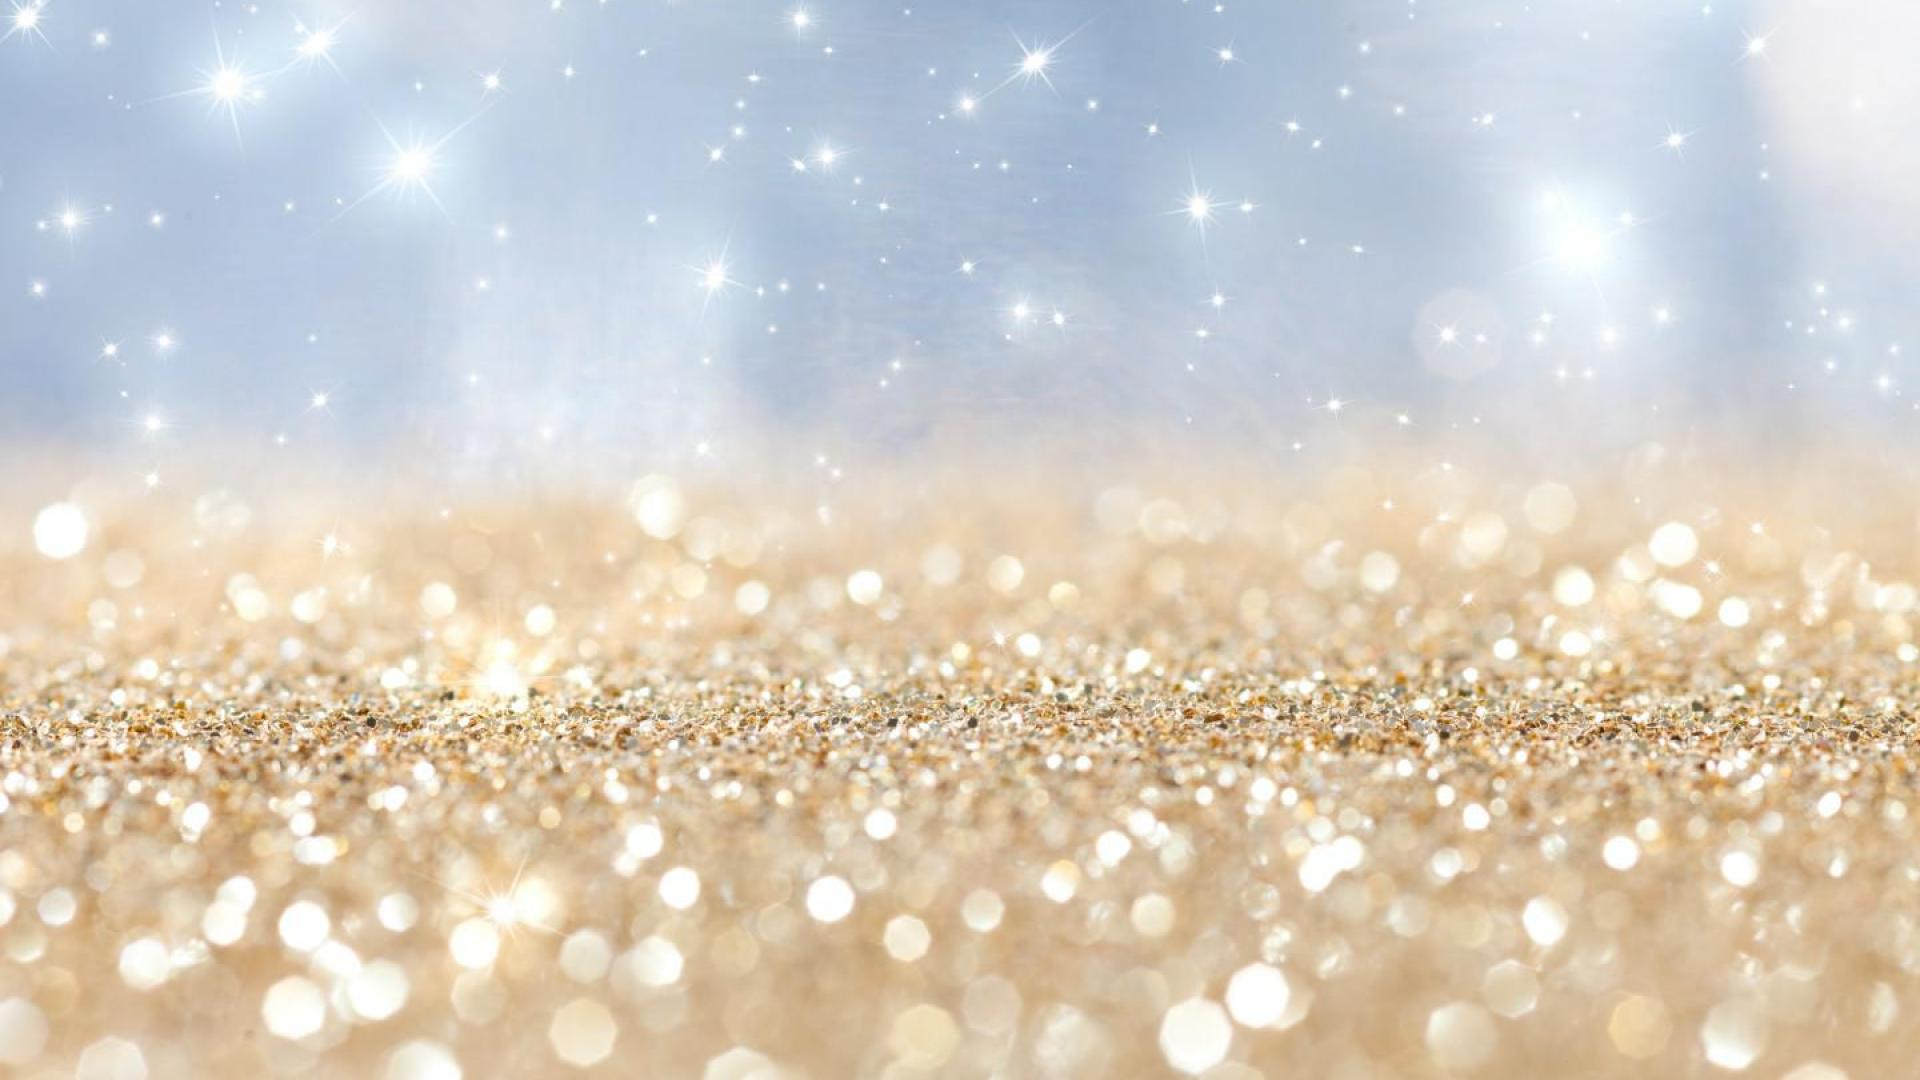 Glitter Backgrounds Free Download